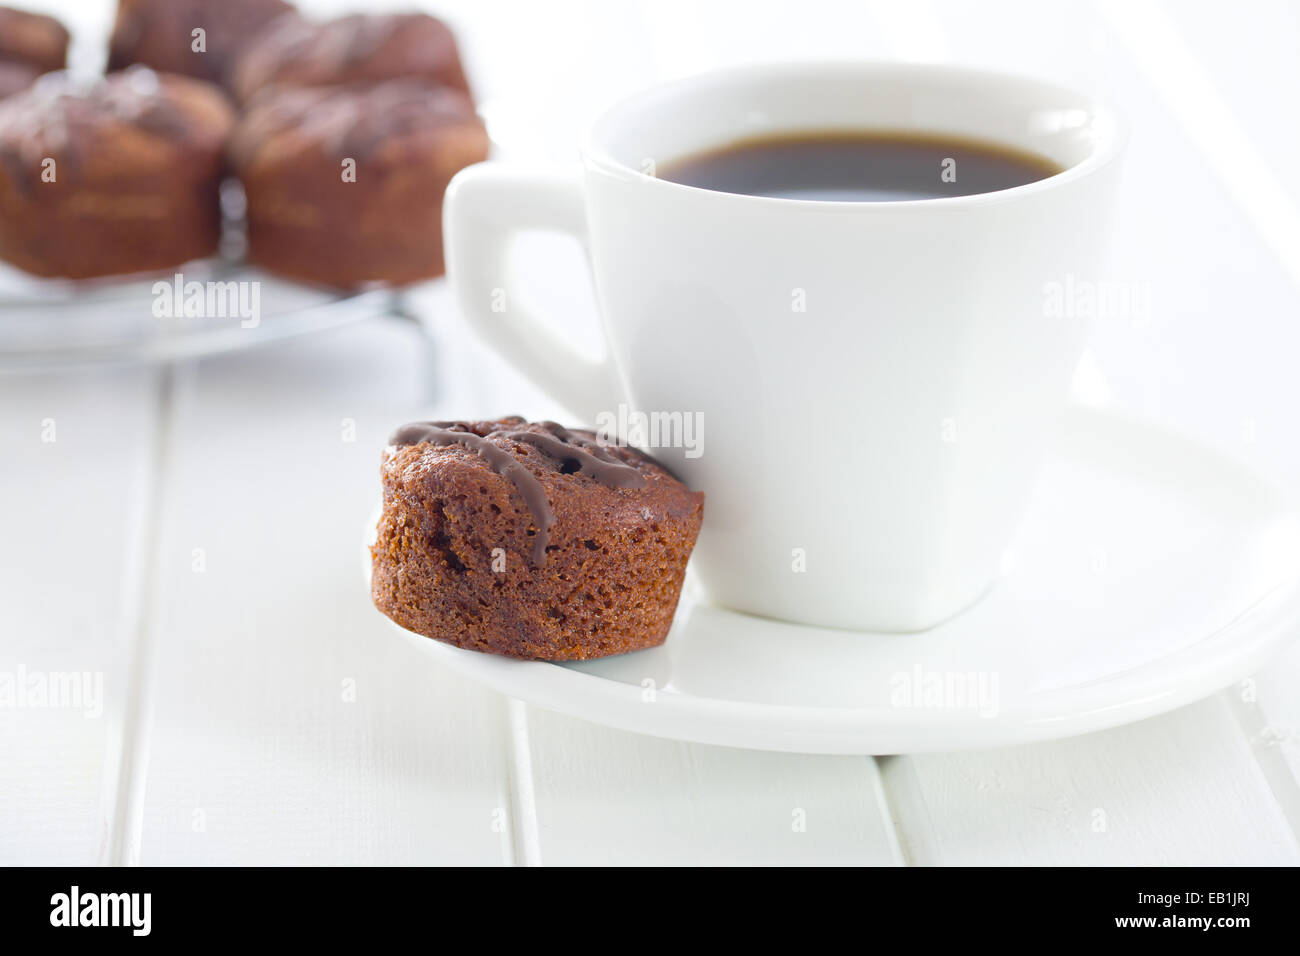 the sweet dessert with chocolate and fruity jam - Stock Image